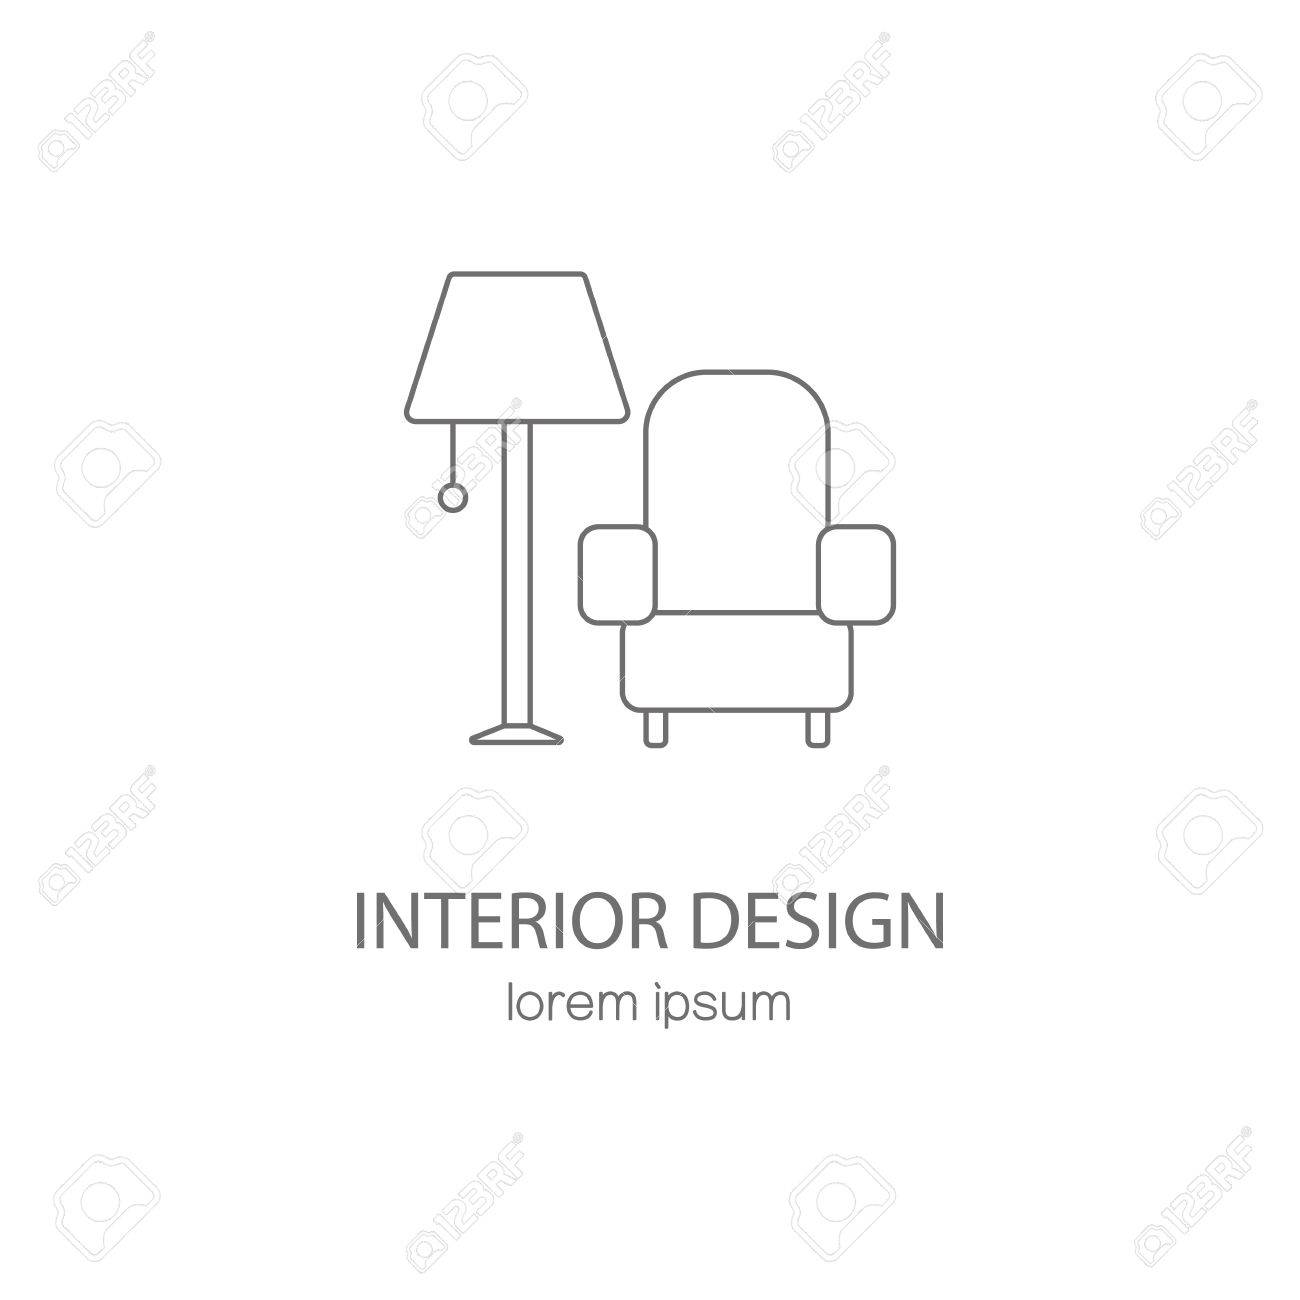 Interior Design Logotype Templates Stock Vector